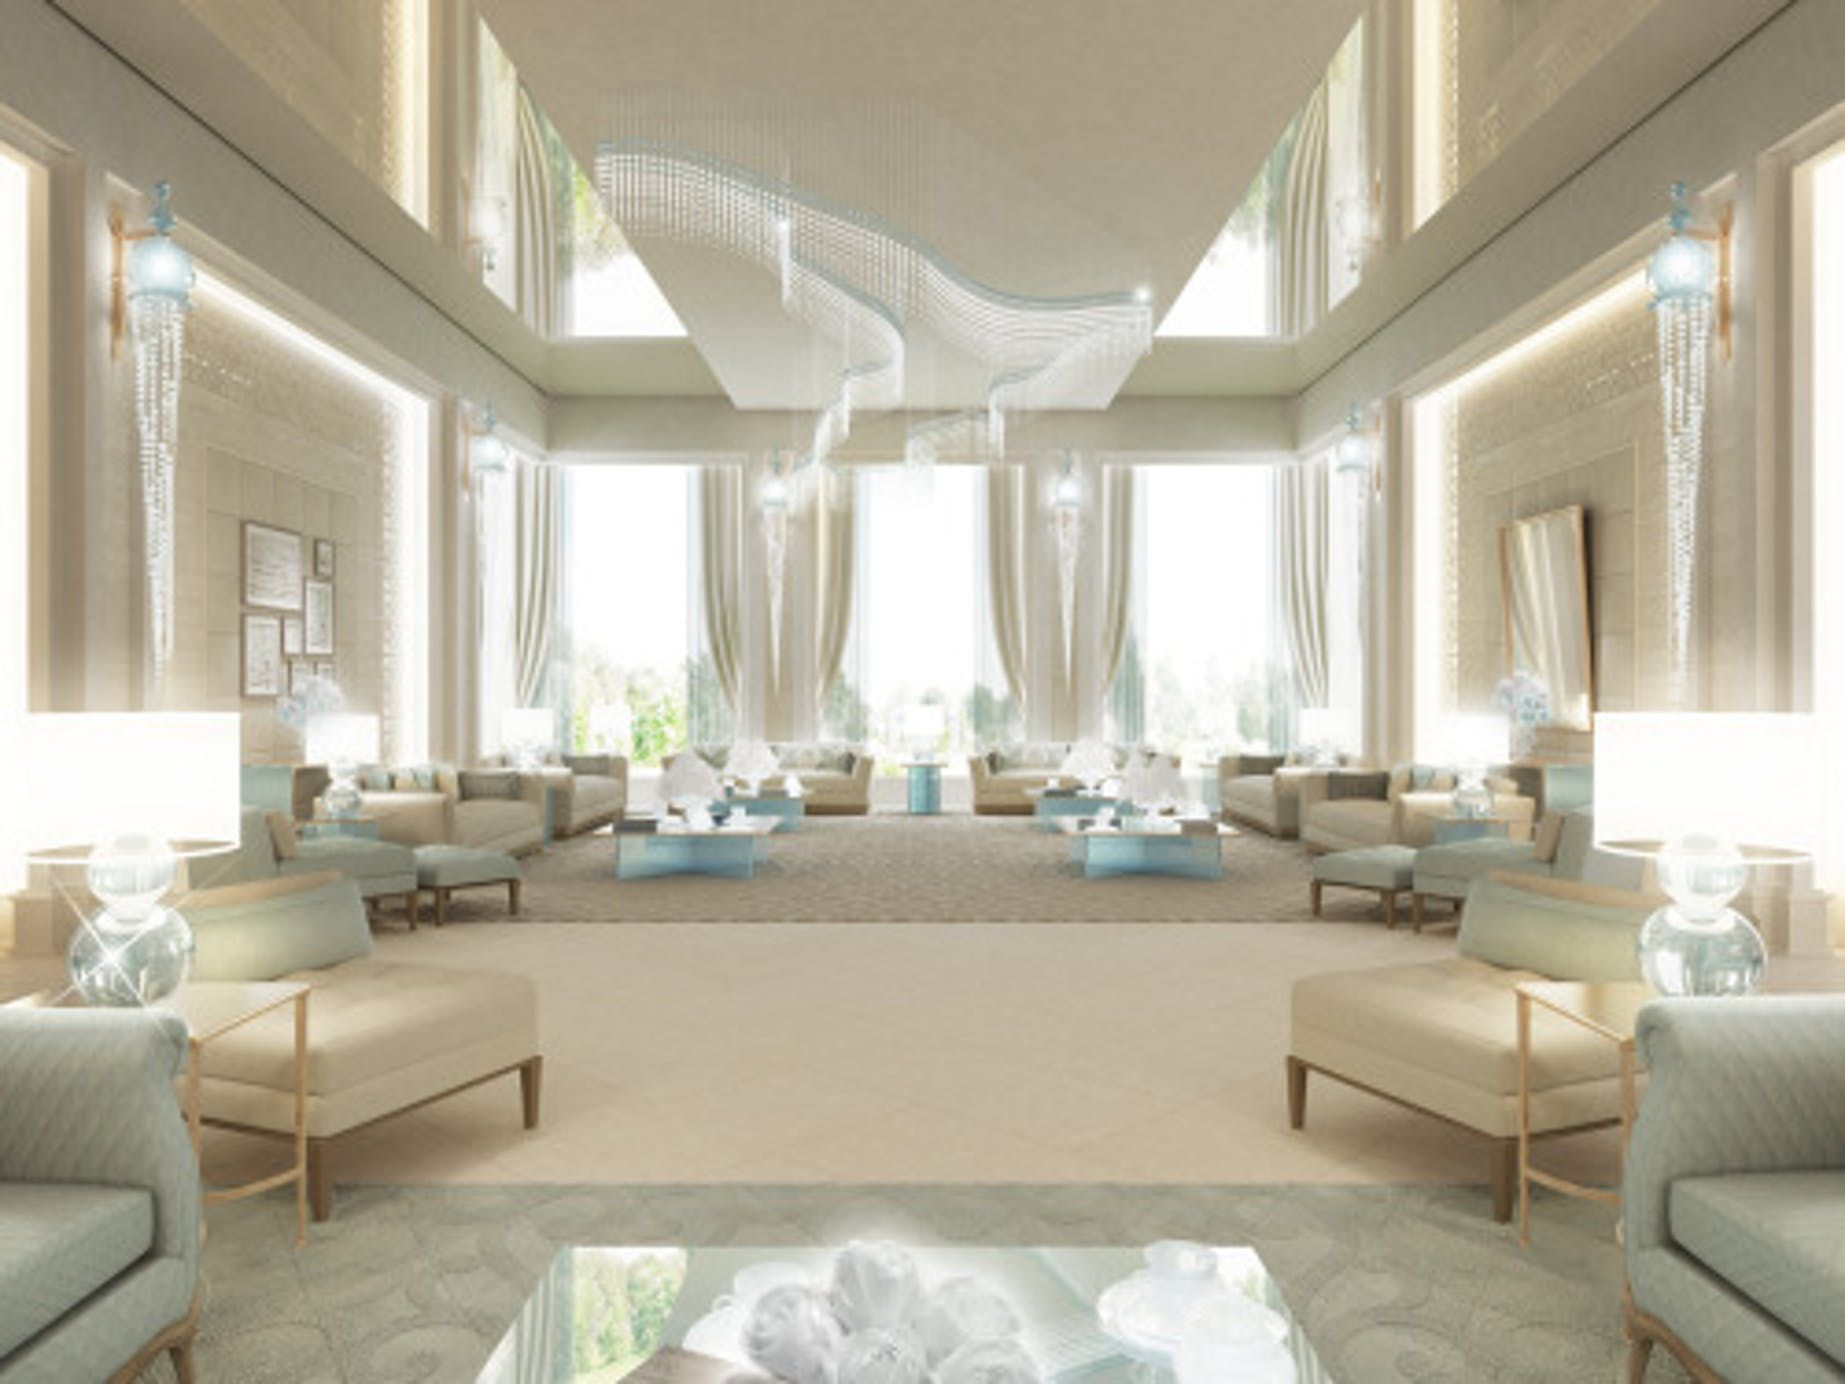 Luxury Living Room Design in Unspeakable Charm | IONS DESIGN ...